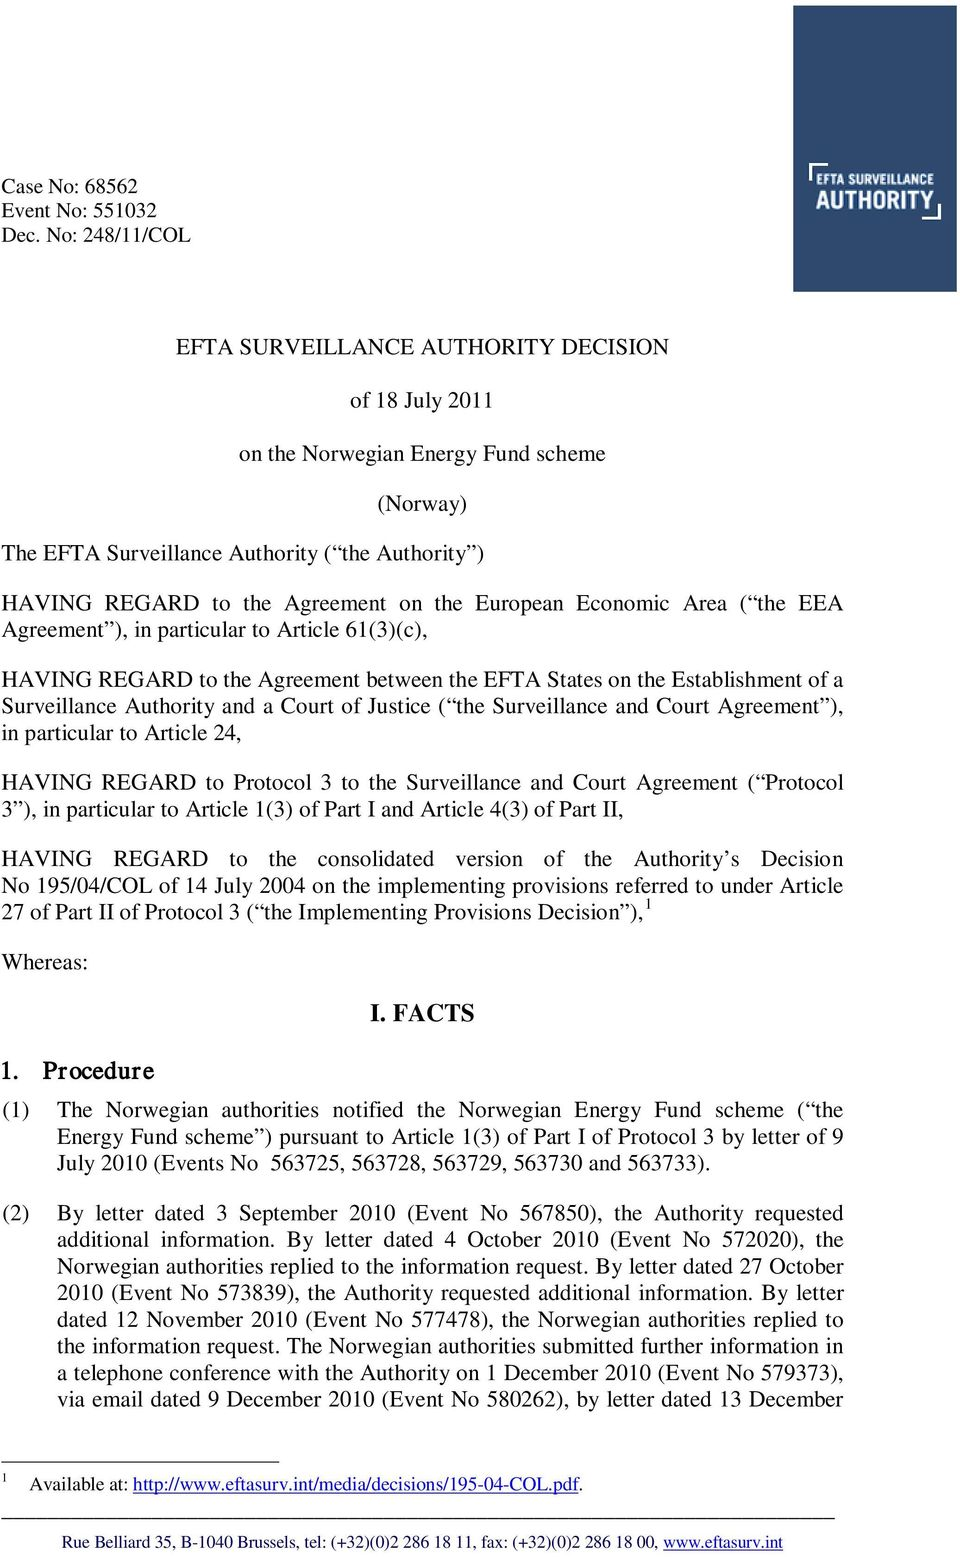 the European Economic Area ( the EEA Agreement ), in particular to Article 61(3)(c), HAVING REGARD to the Agreement between the EFTA States on the Establishment of a Surveillance Authority and a